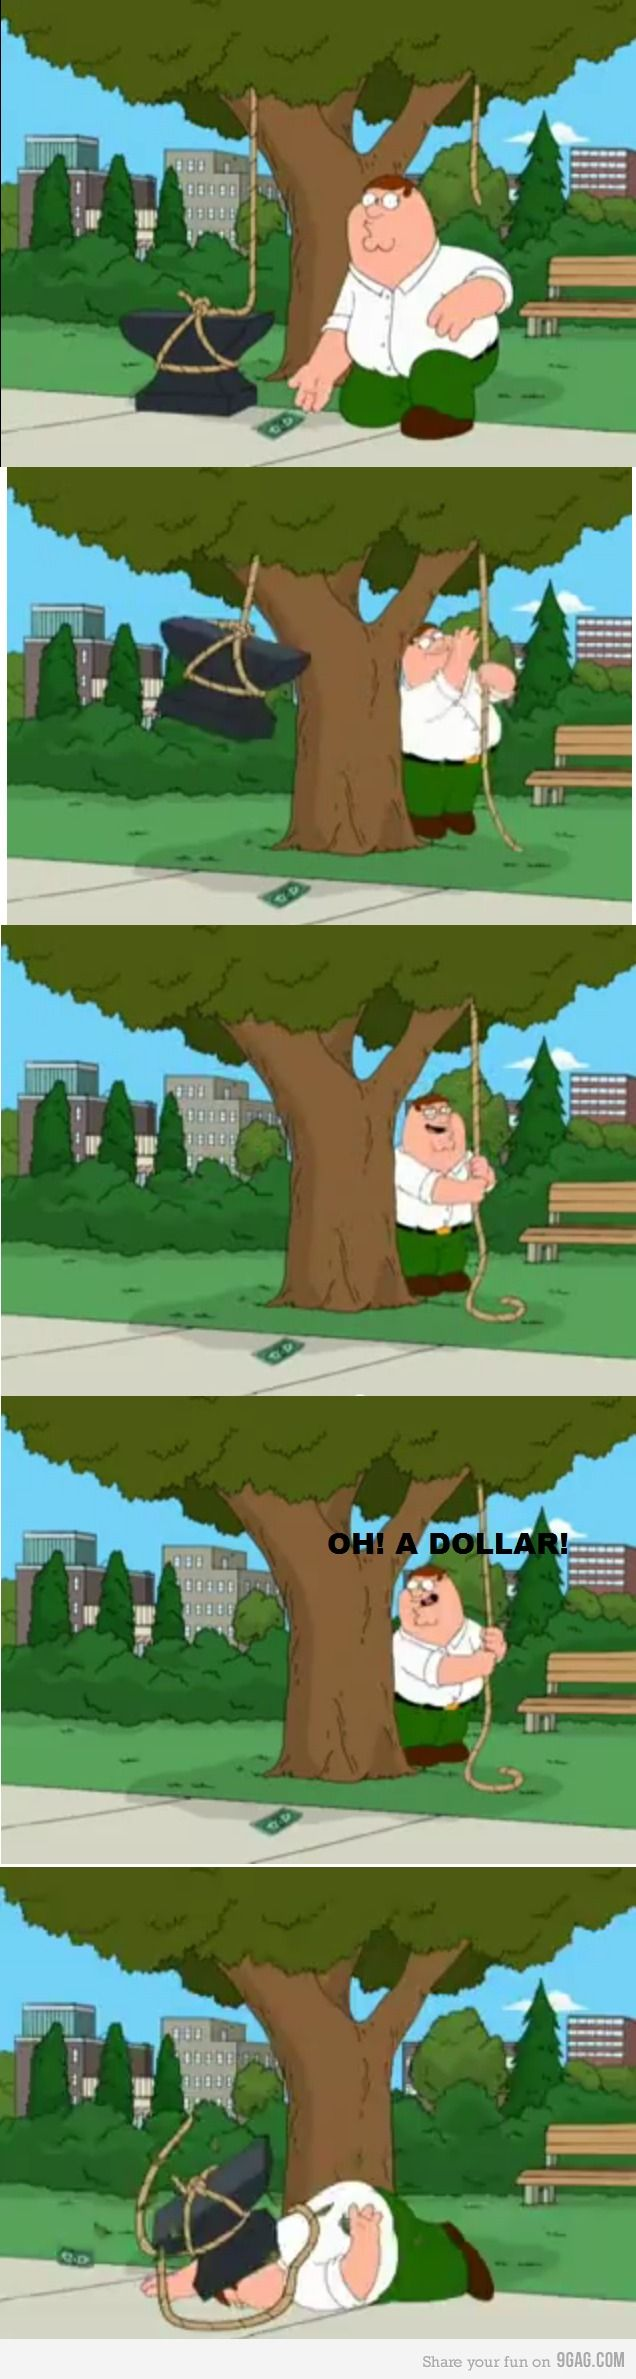 Always Peter Griffin!